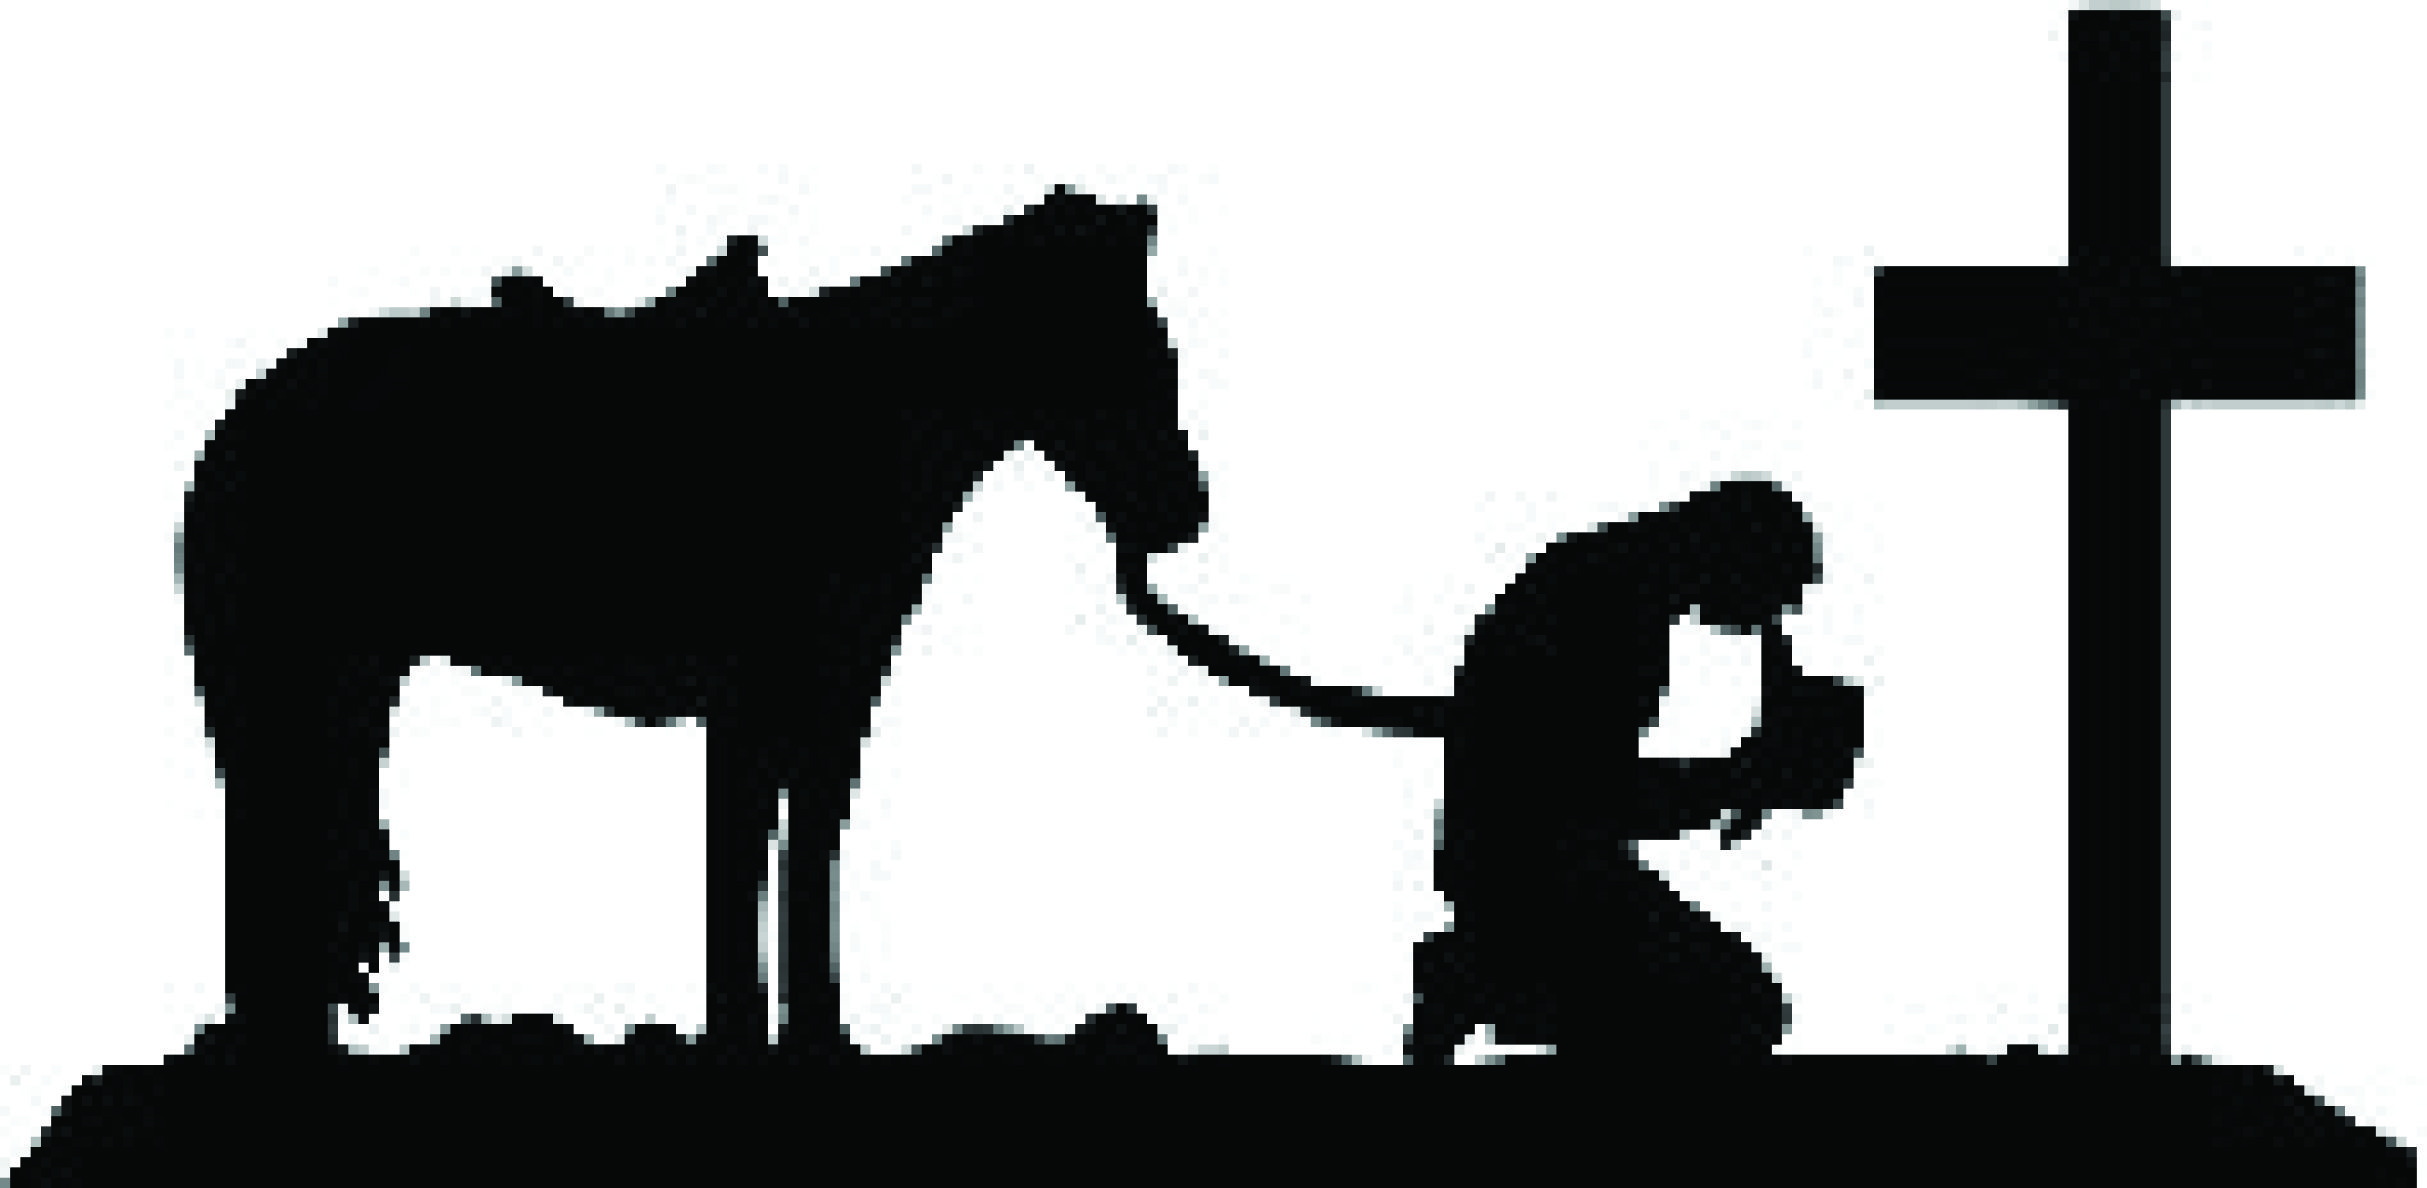 Praying cowboy silhouette clipart picture royalty free stock Praying cowboy clipart   cricut   Clip art, Bing images ... picture royalty free stock